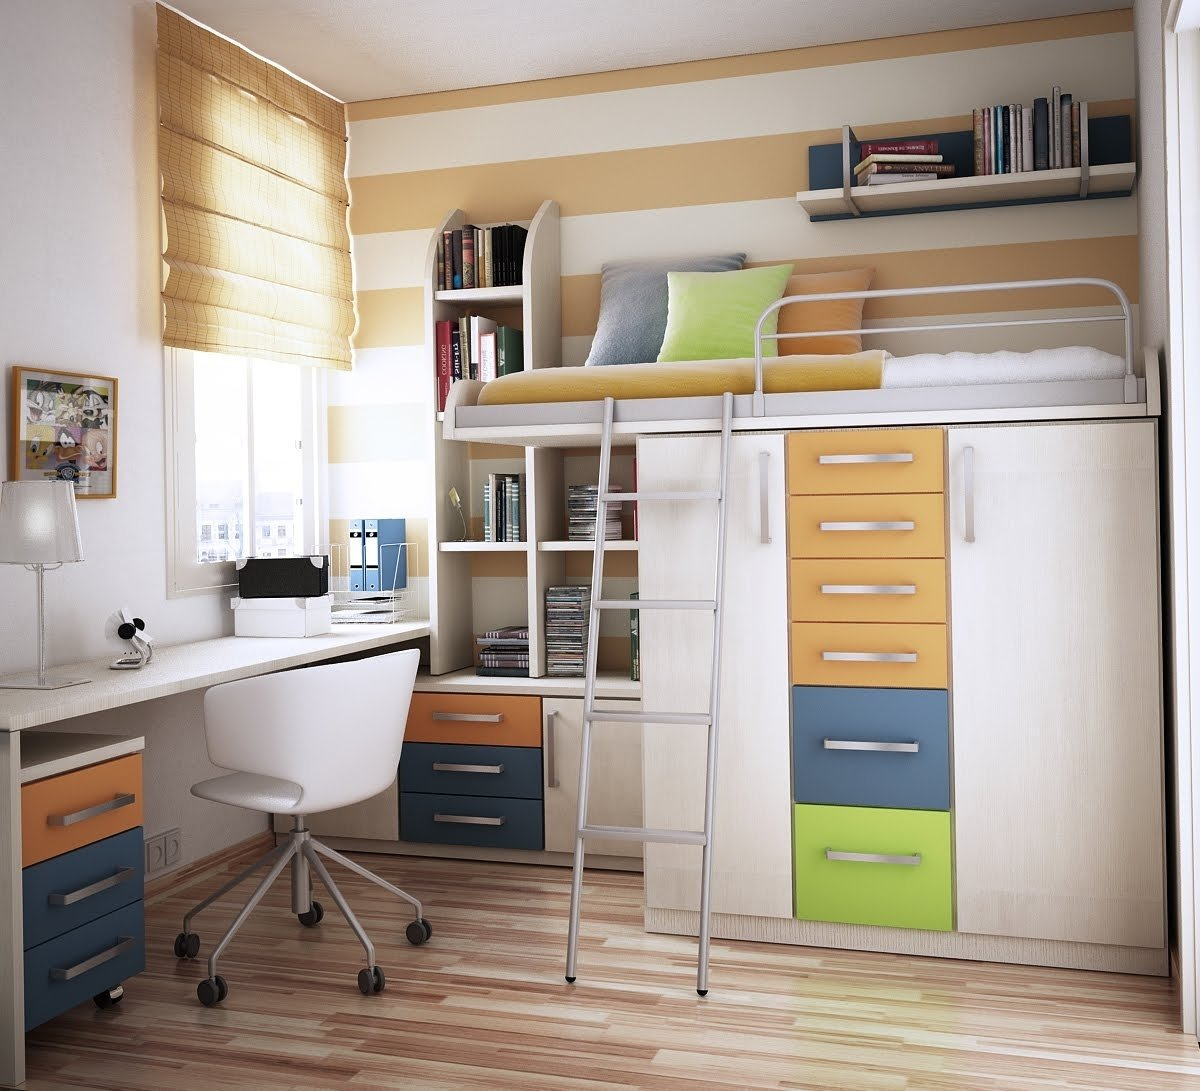 10 Most Popular Space Saving Ideas For Small Apartments deluxe design boy bedroom space saving small kid decosee 2020